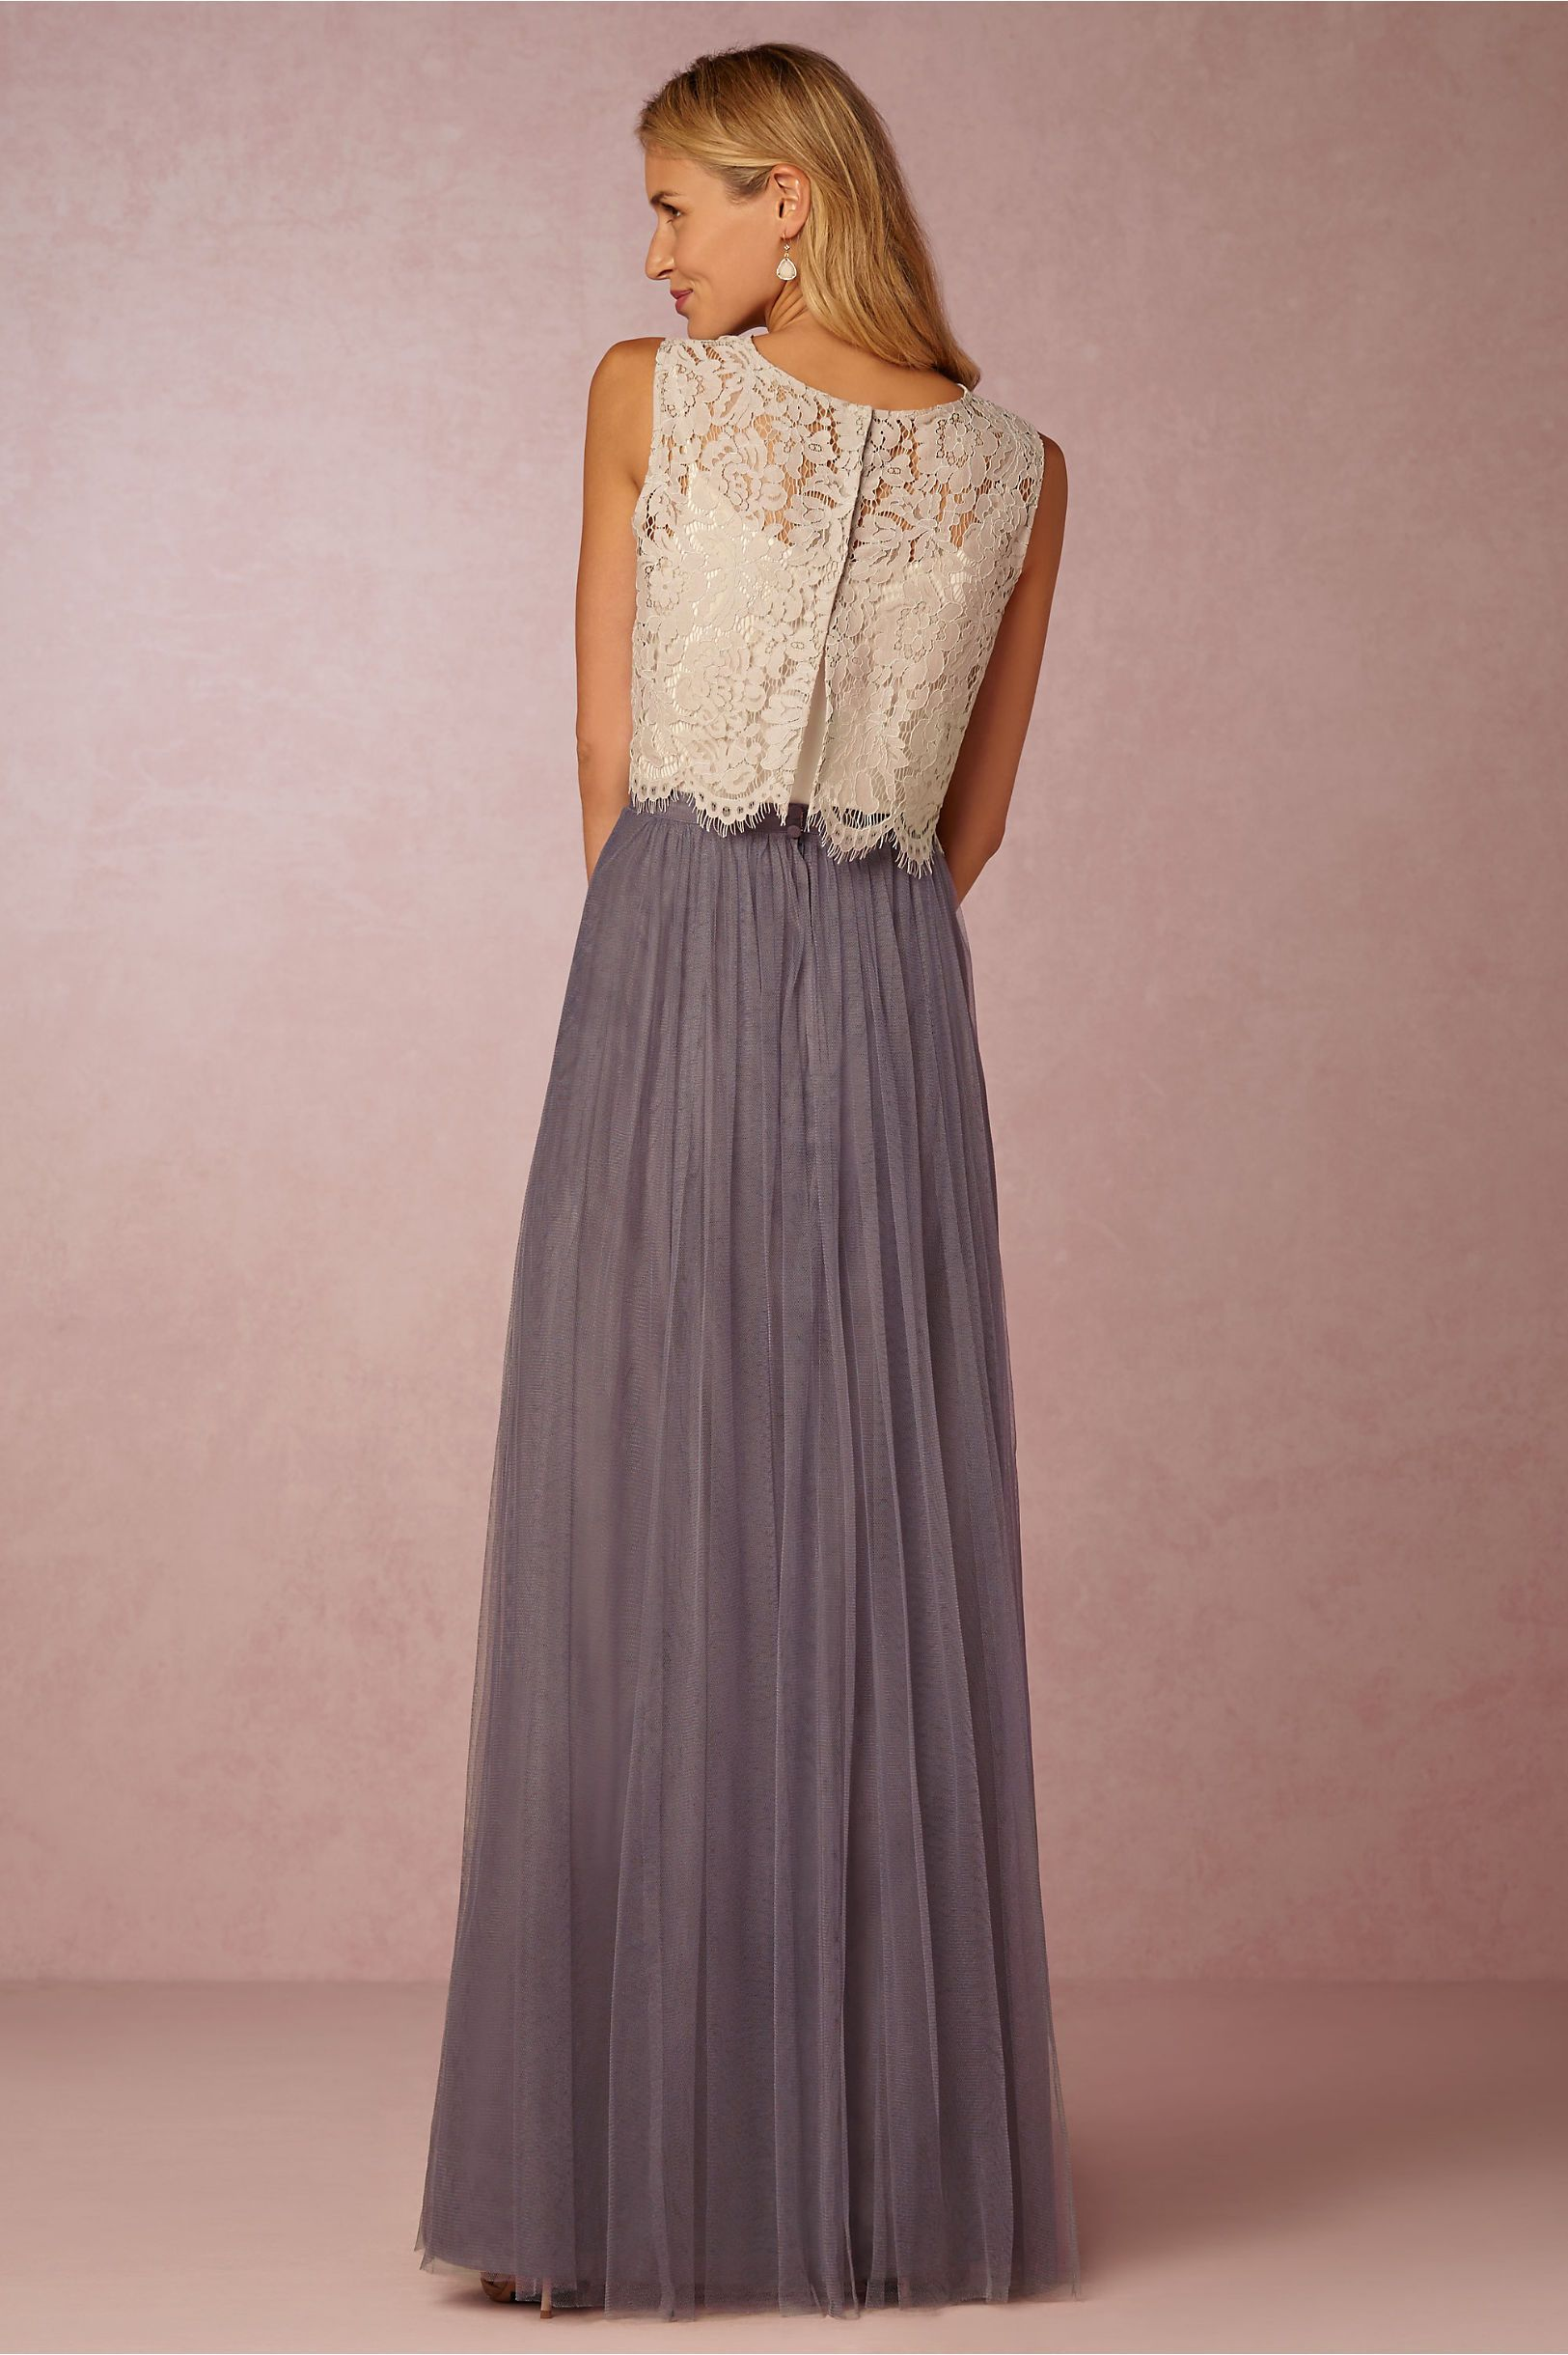 Cleo Top & Louise Skirt in Bridesmaids Maid of Honor Dresses at ...